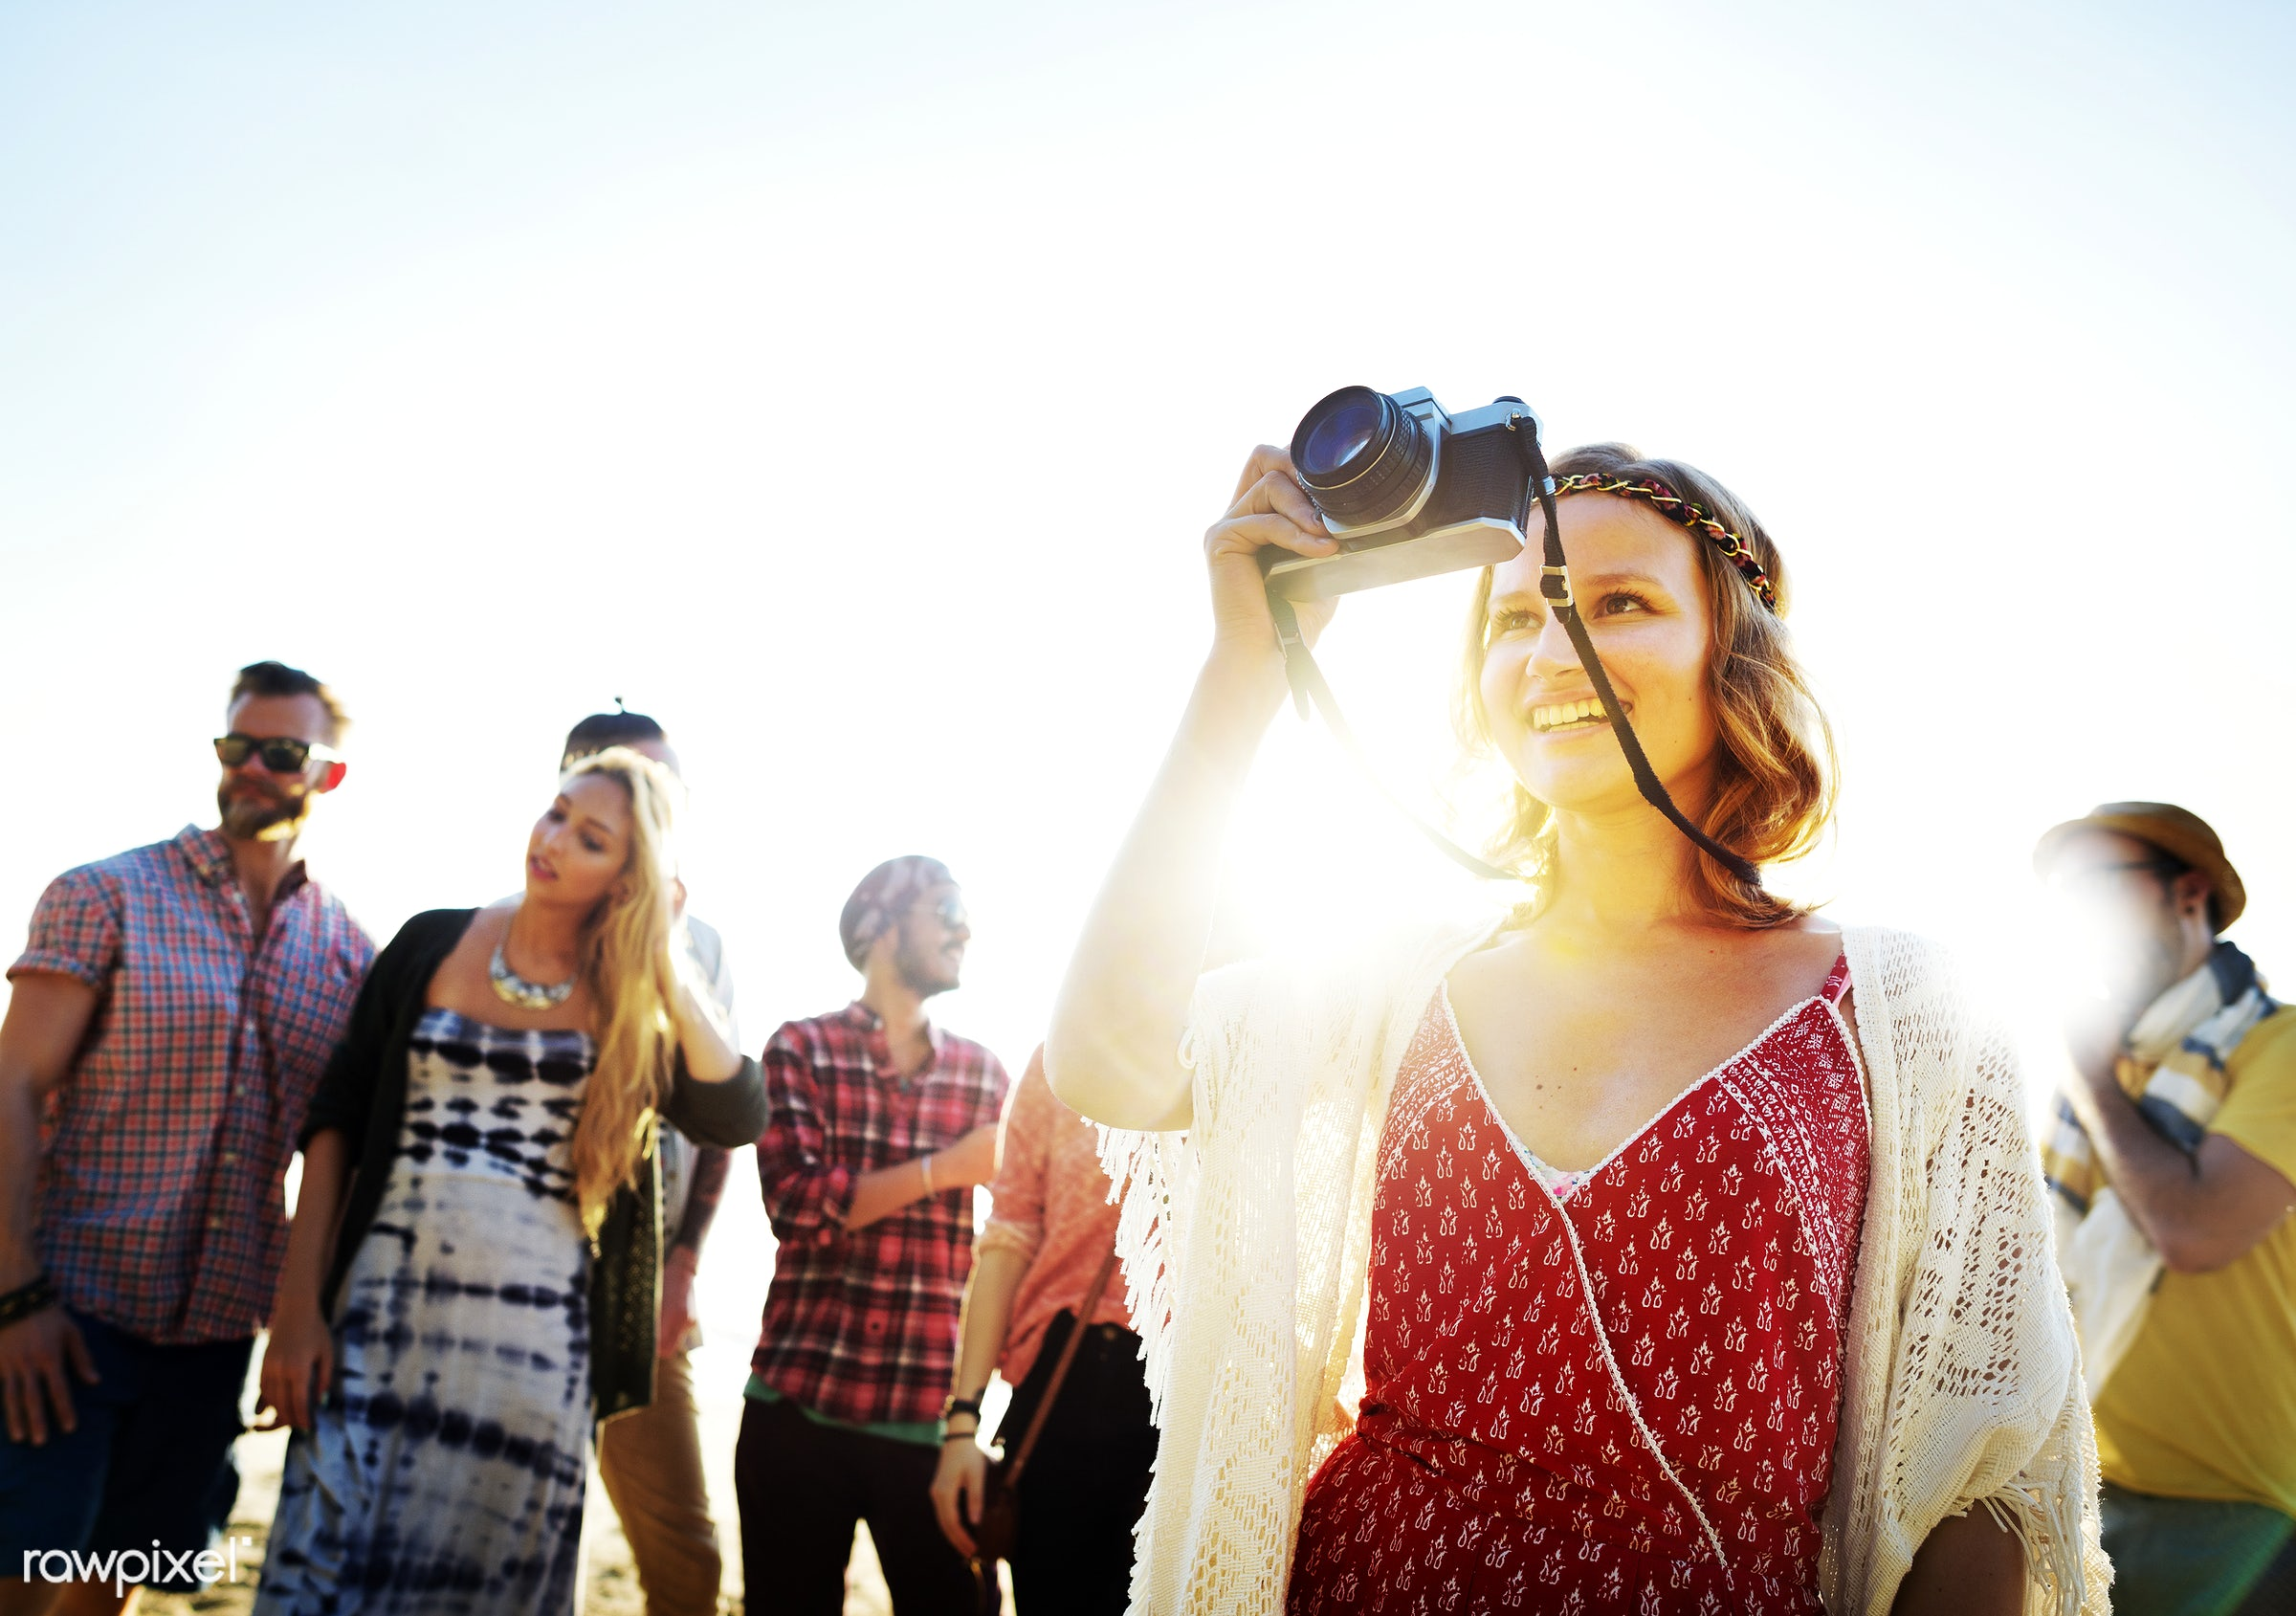 Friends having fun at the beach - camera, hanging out, photographer, beach, bonding, bright, casual, cheerful, colorful, day...